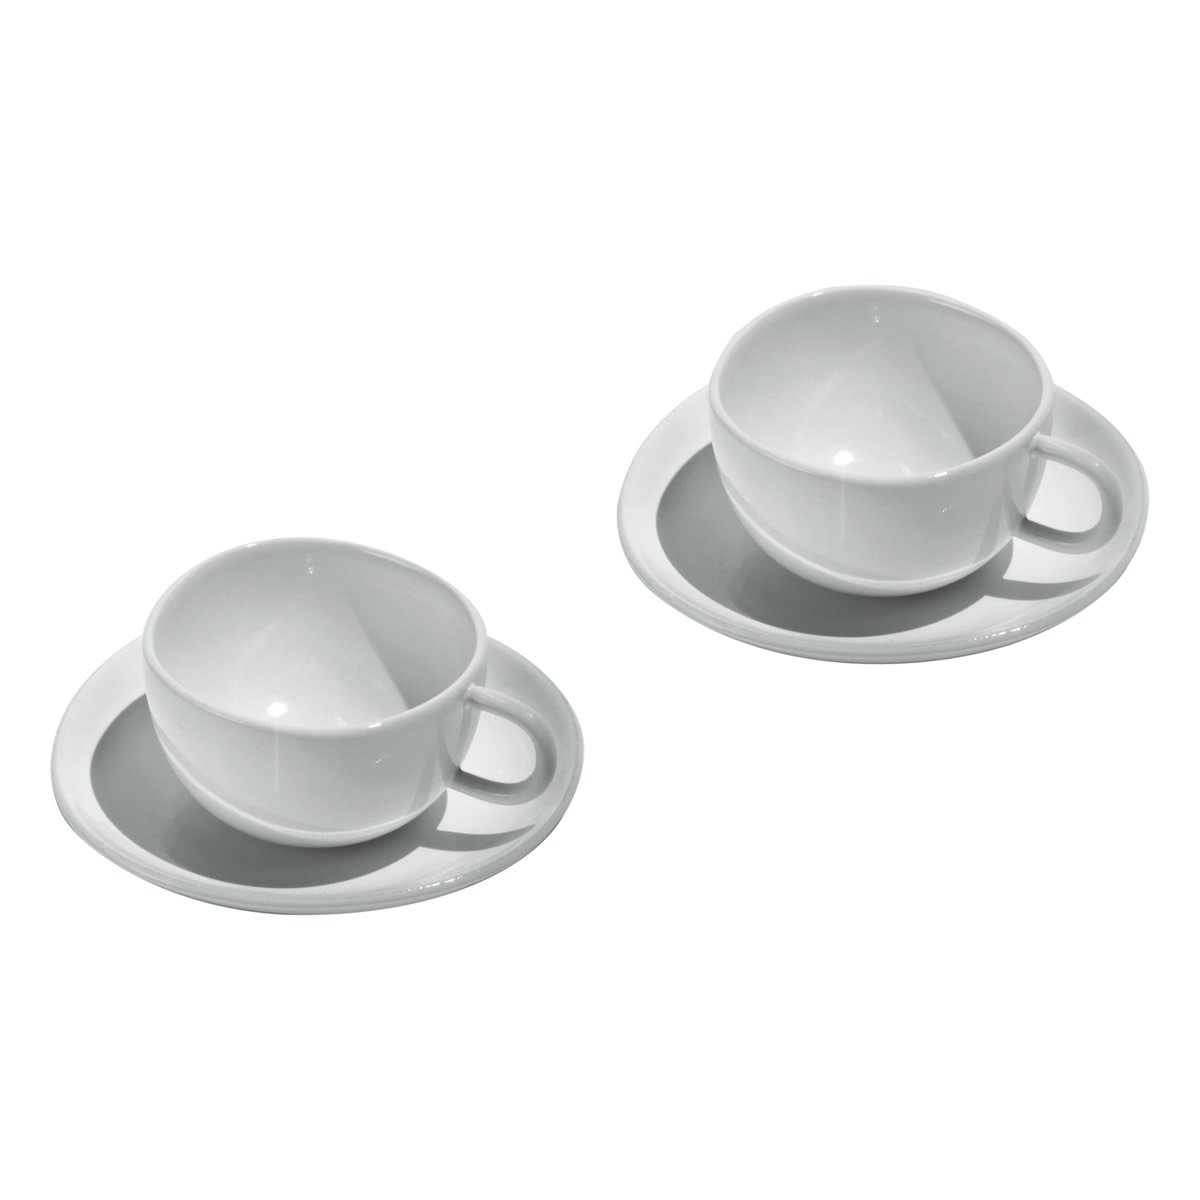 Officina Alessi Fruit Basket Mocha Cups and Saucers, Set of 2, White